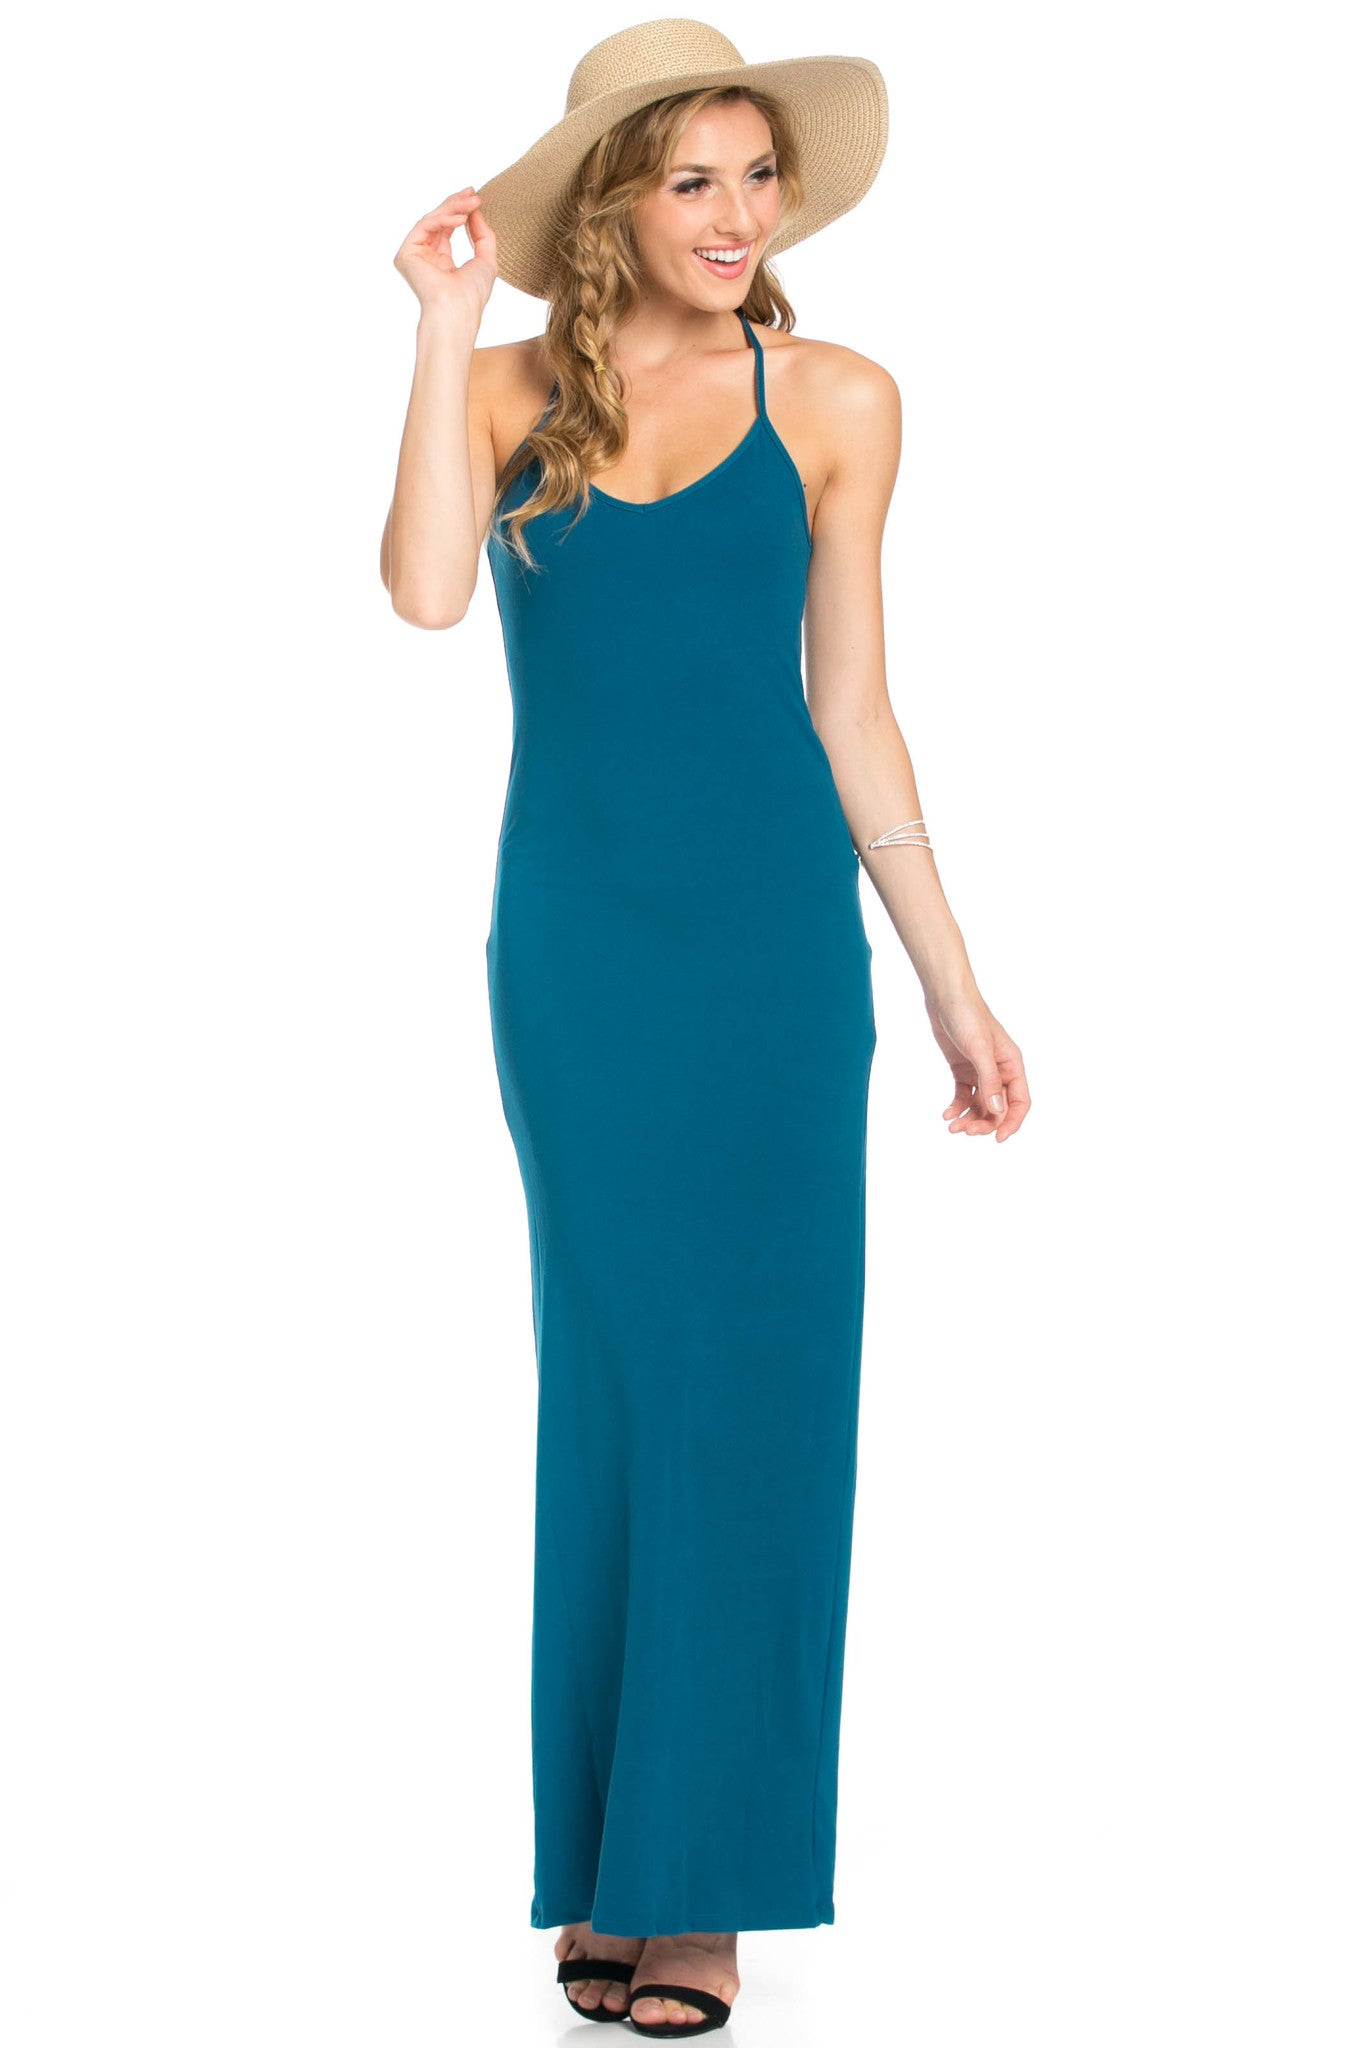 Micro Suede Teal Maxi Dress - Dresses - My Yuccie - 7